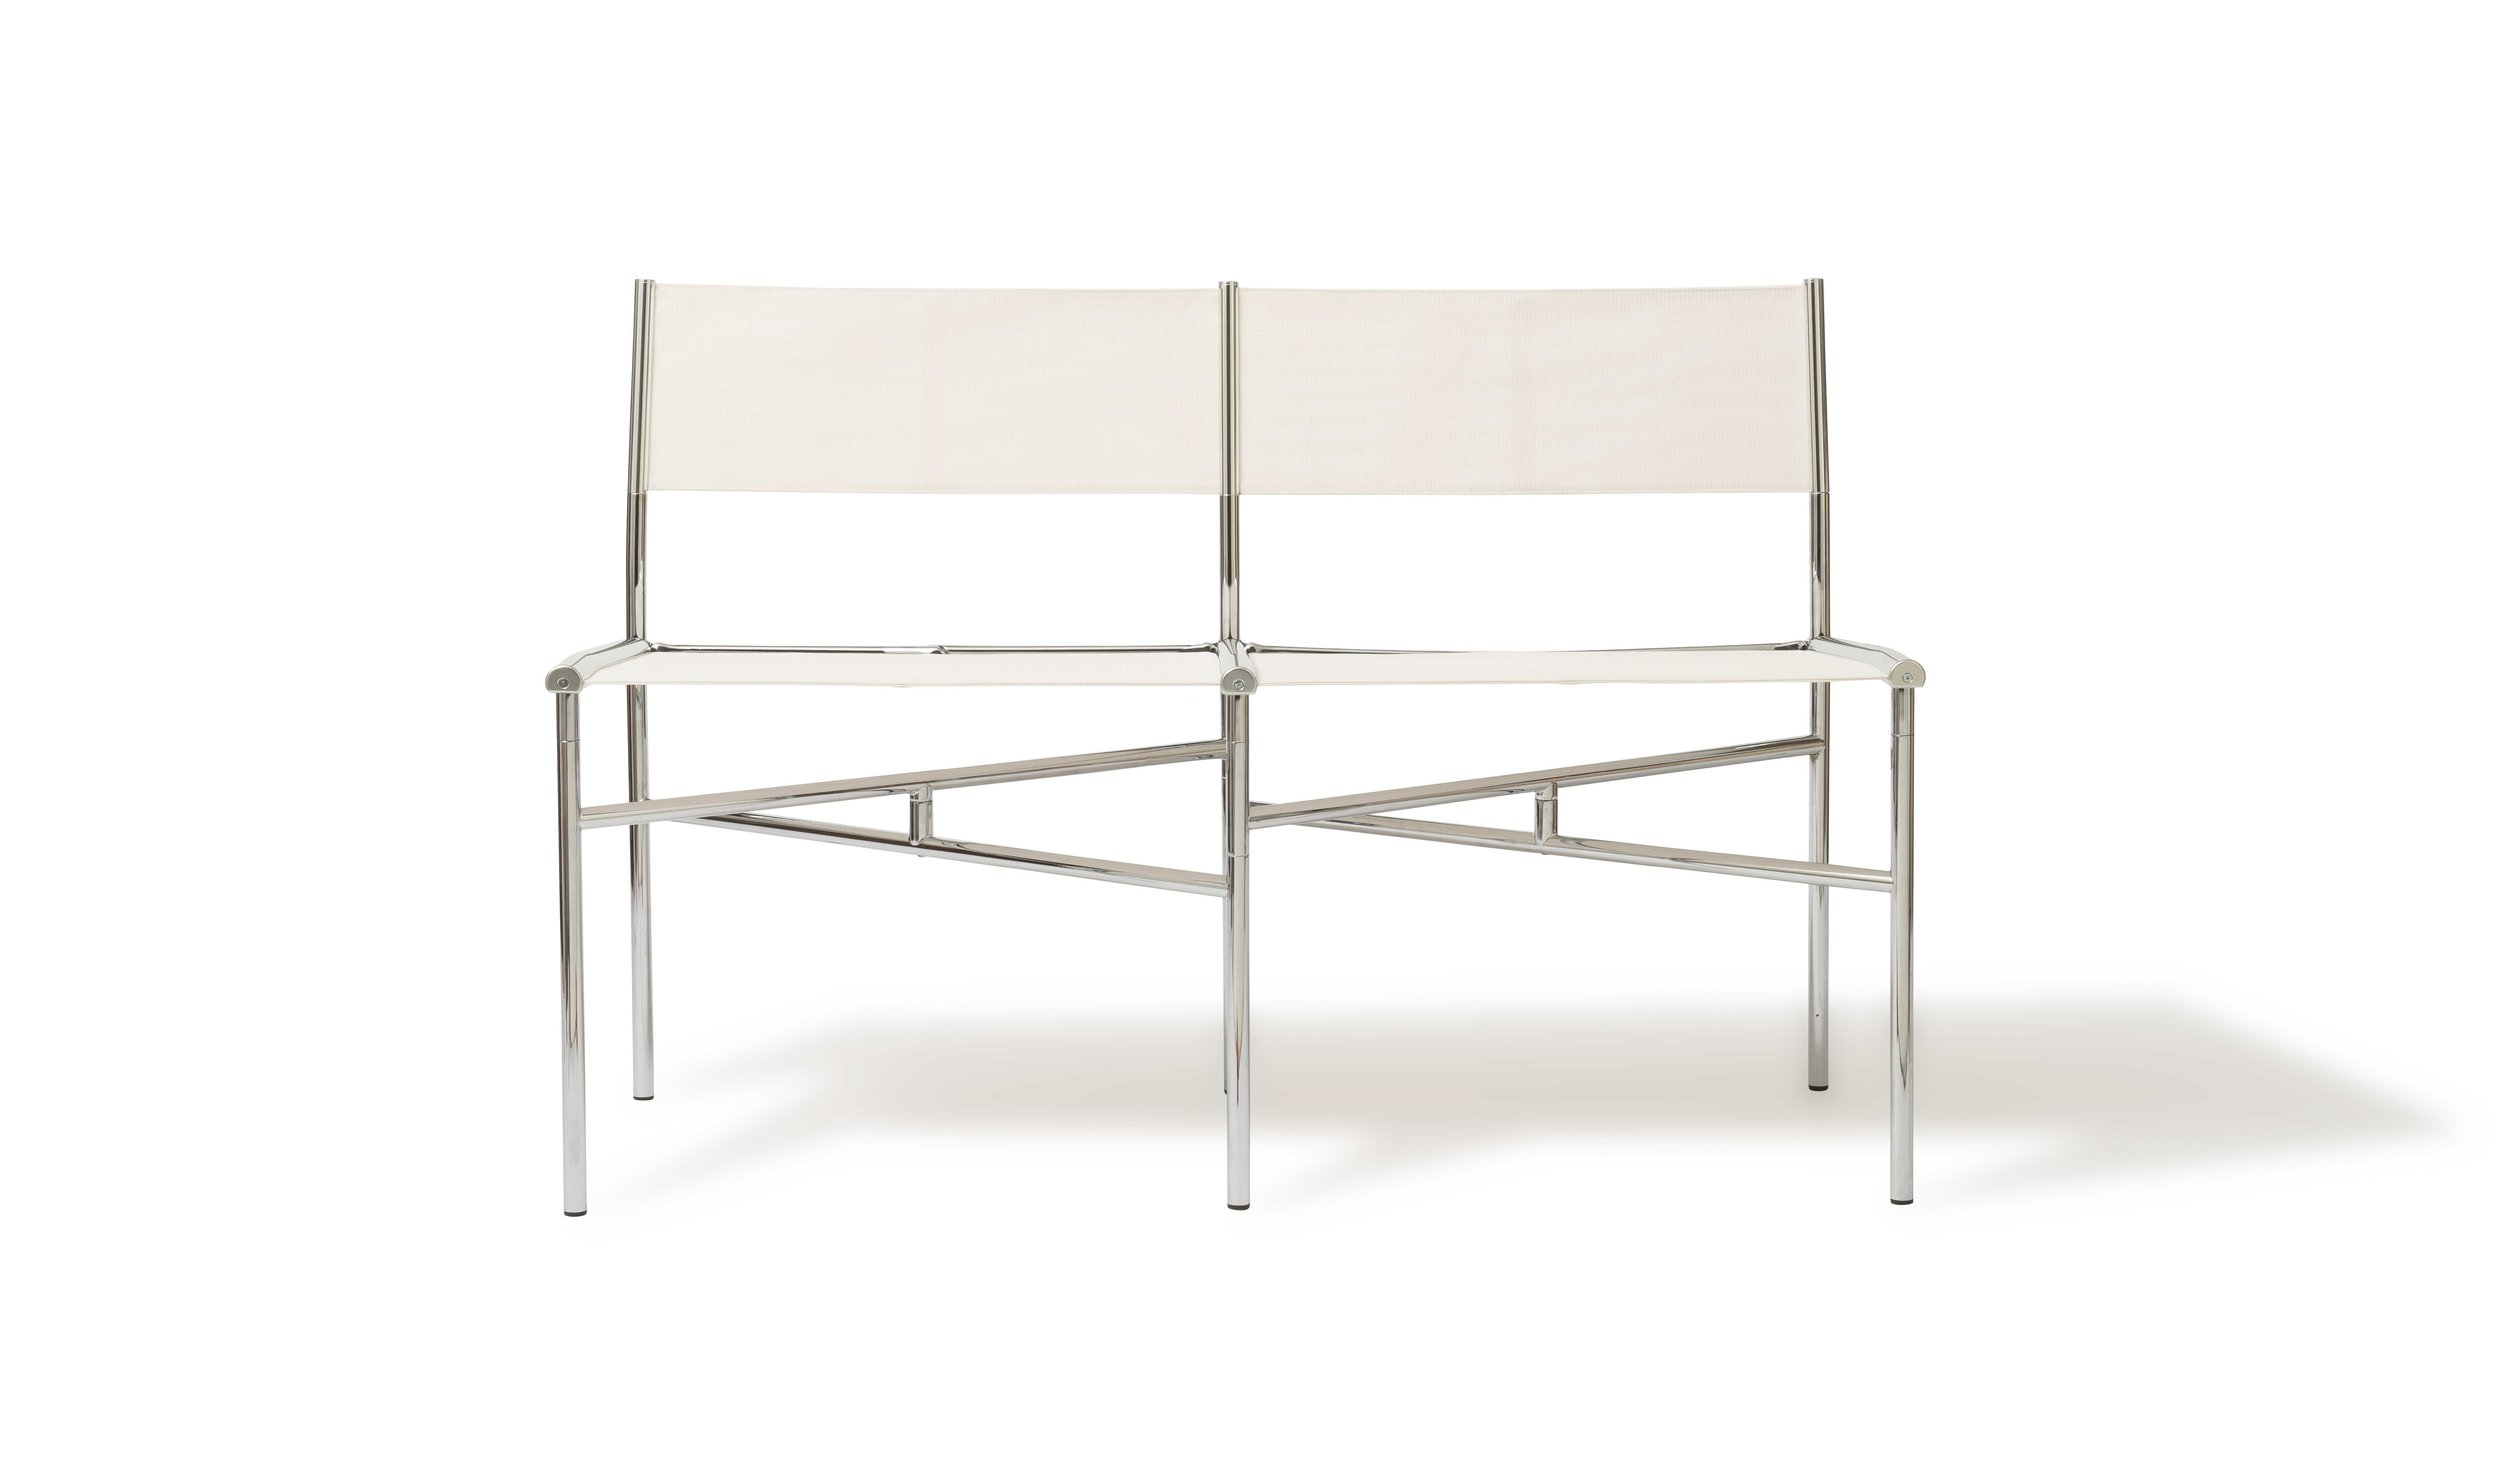 meeting_chairs_humier_2_seats_white.jpg